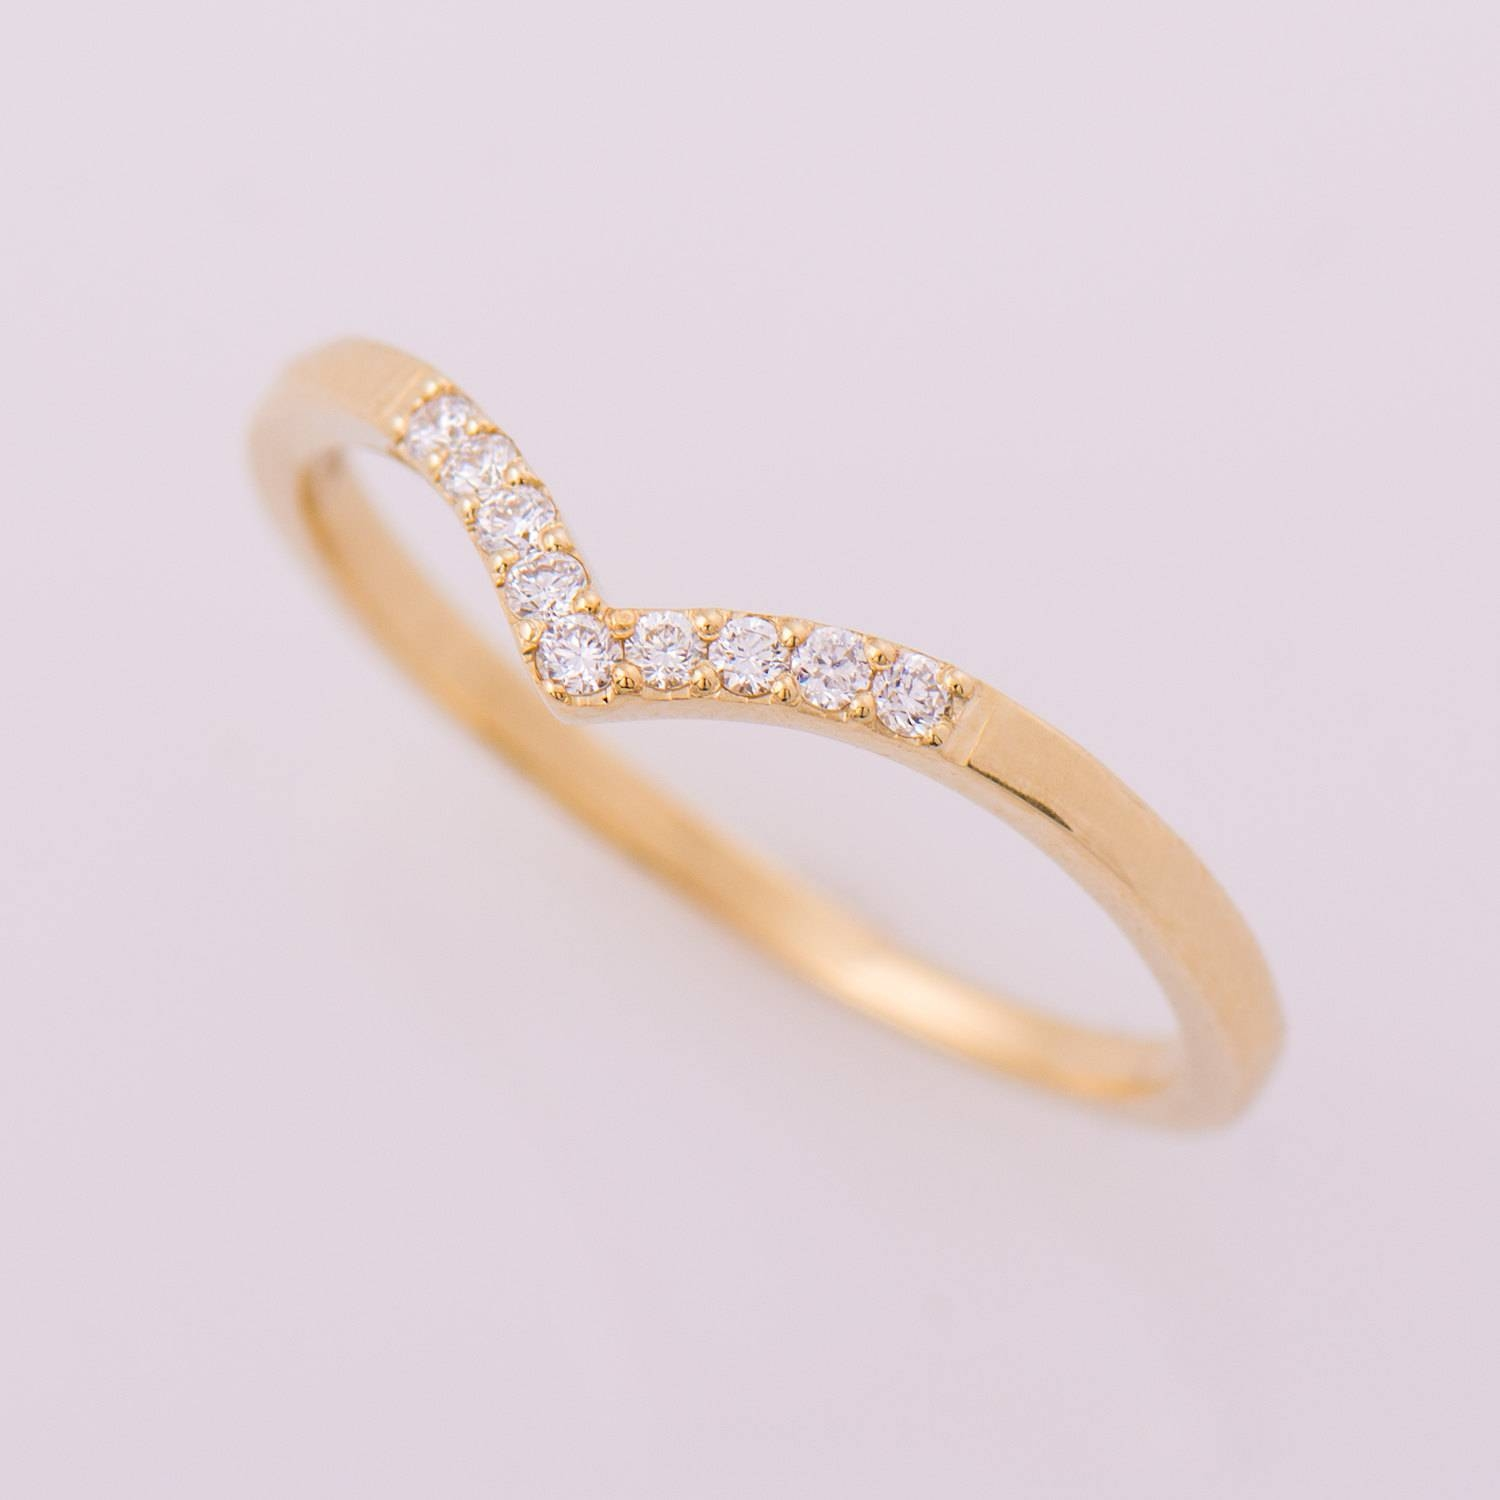 Chevron Ring 14K Yellow Gold Diamonds Ring V Shaped Ring Intended For Chevron Wedding Bands (View 4 of 15)